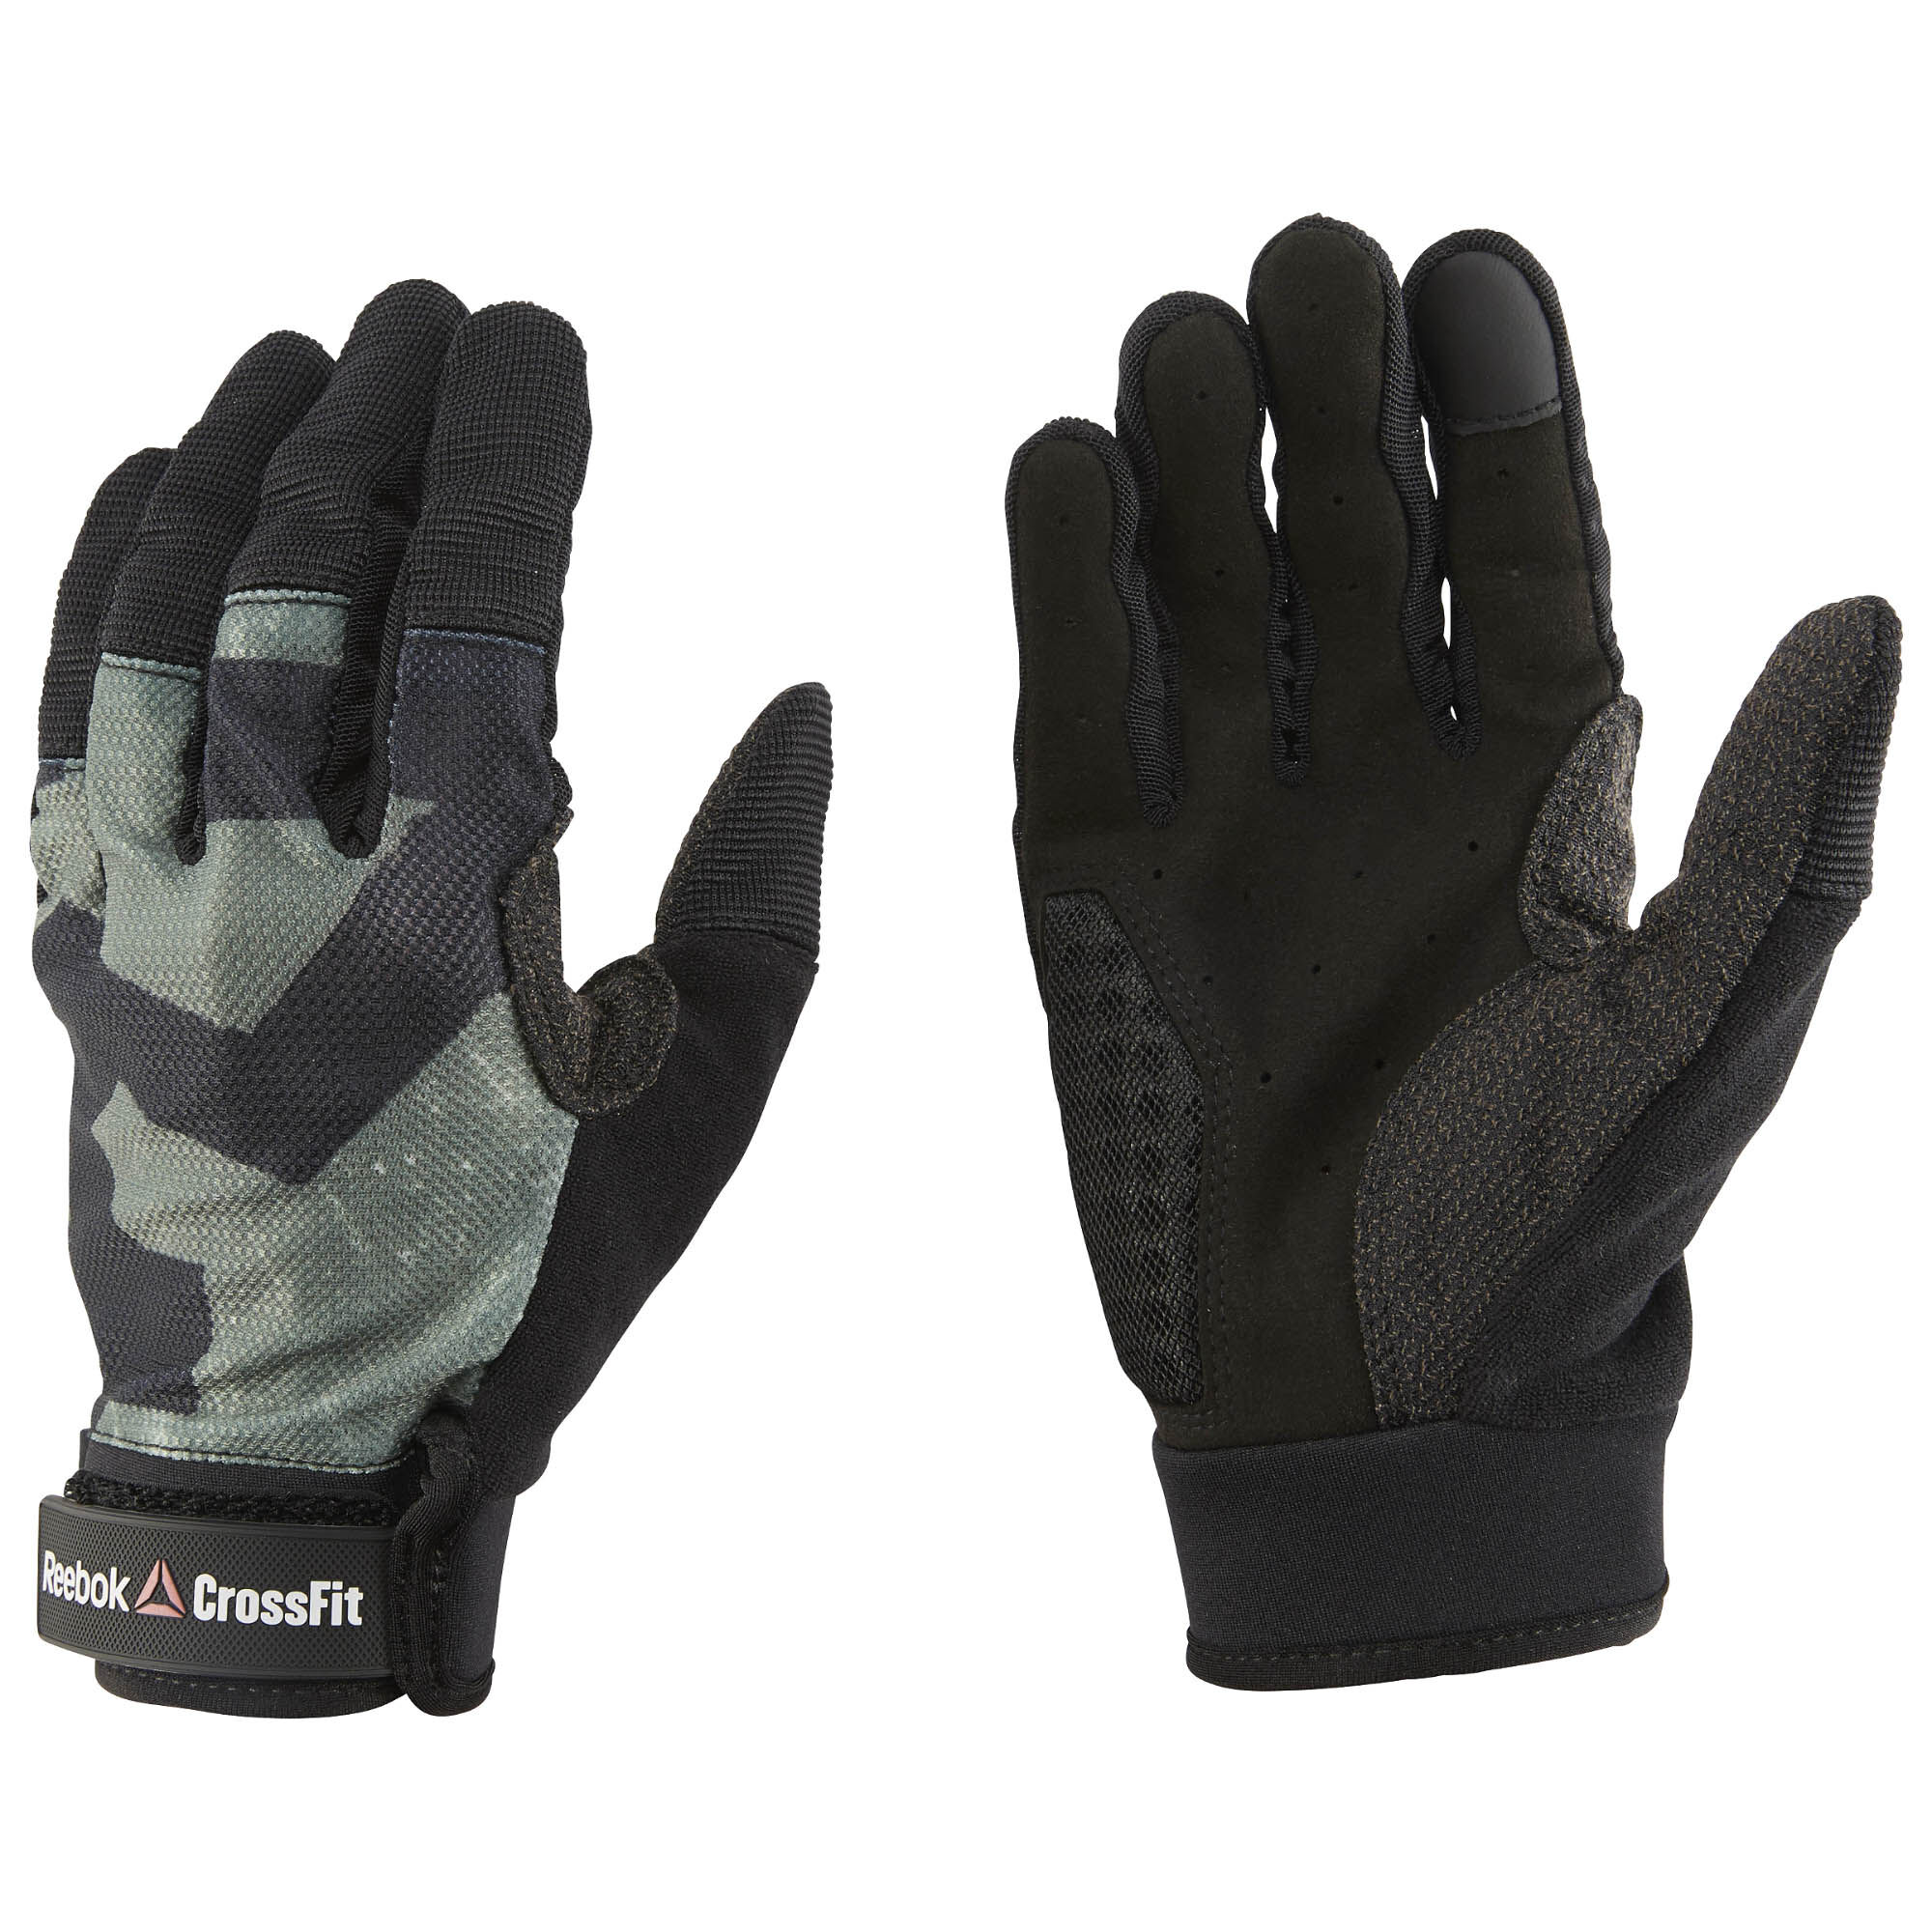 Reebok Crossfit Training Gloves: Hommes Reebok CrossFit Training Glove